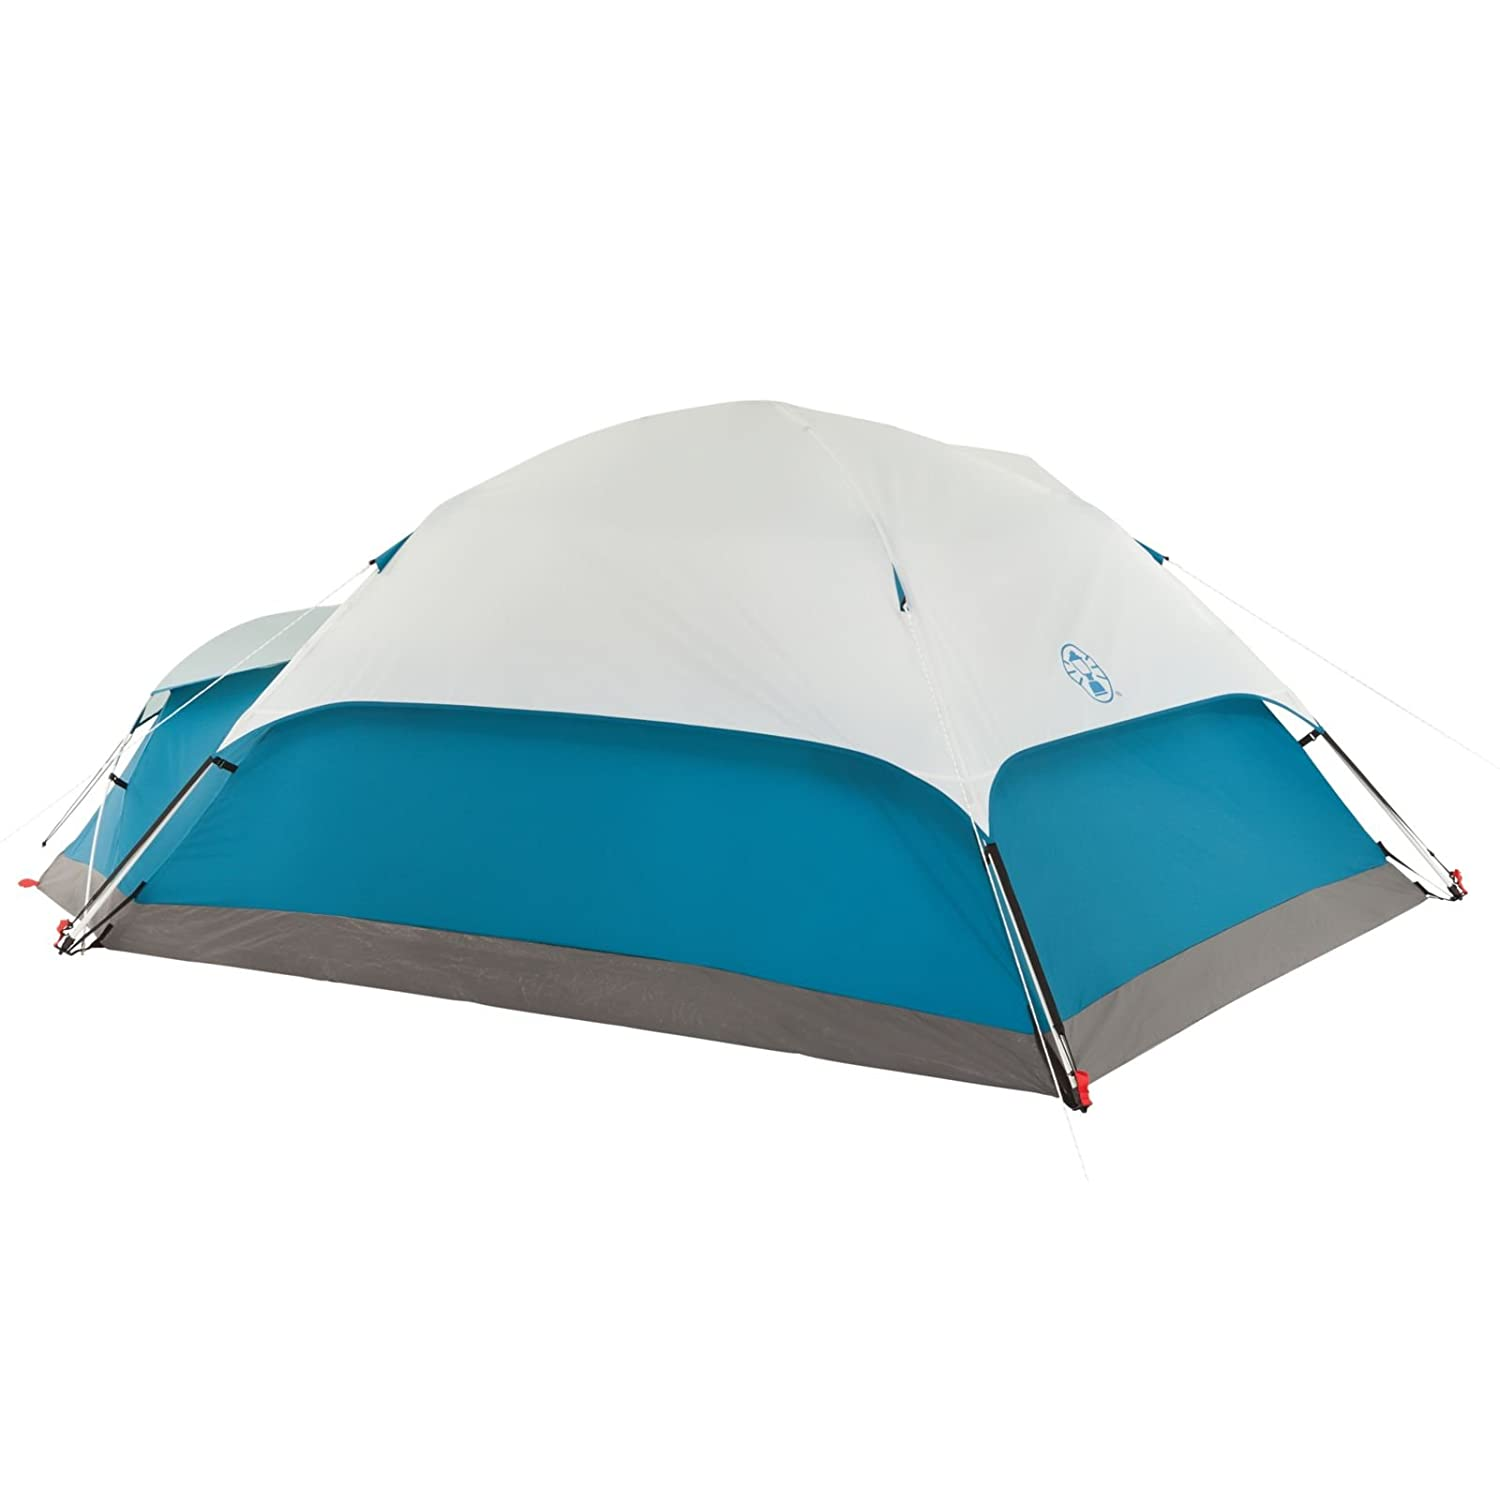 Amazon.com  Juniper Lake Instant Dome 4 Person Tent with Annex  Sports u0026 Outdoors  sc 1 st  Amazon.com & Amazon.com : Juniper Lake Instant Dome 4 Person Tent with Annex ...